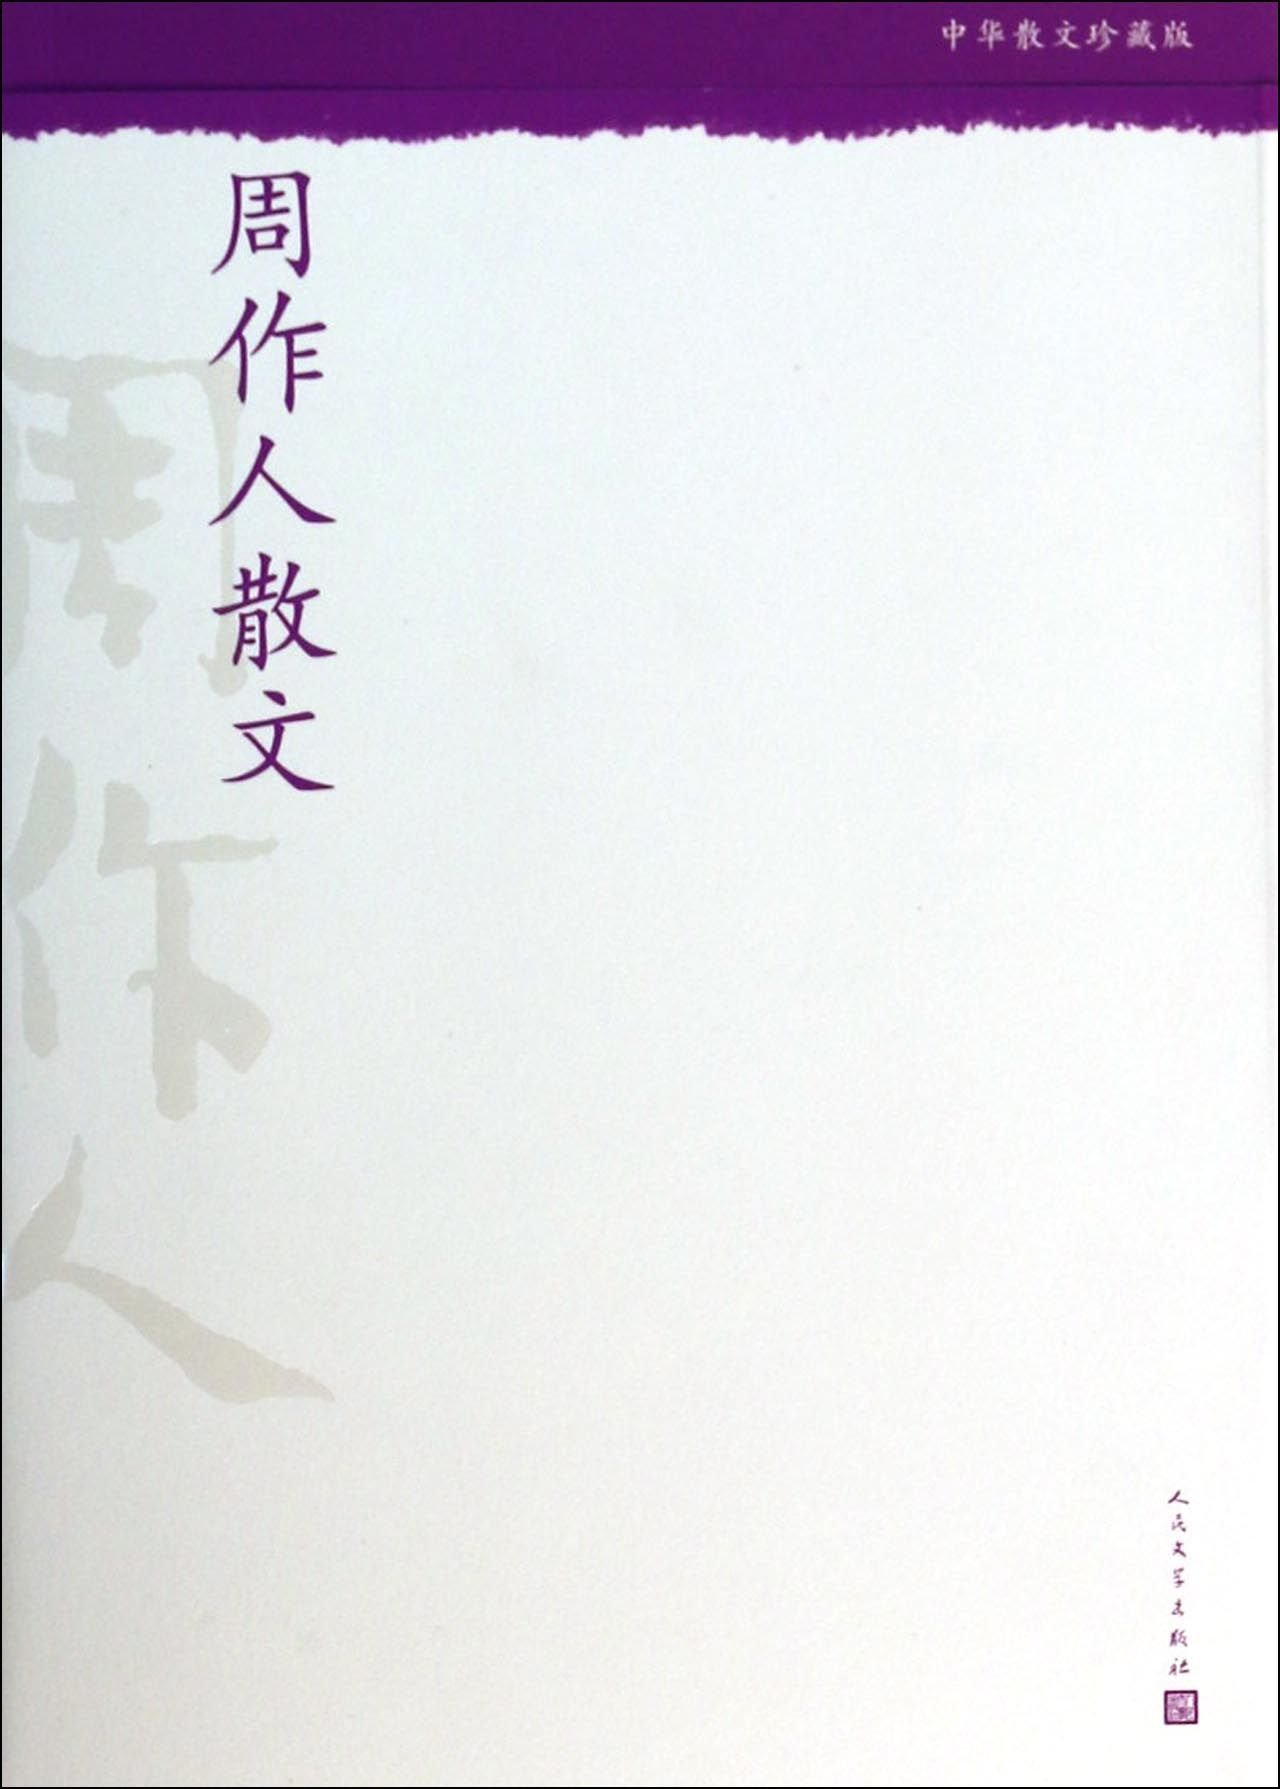 Read Online China prose Collector's Edition: Zhou Zuoren(Chinese Edition) PDF ePub fb2 ebook